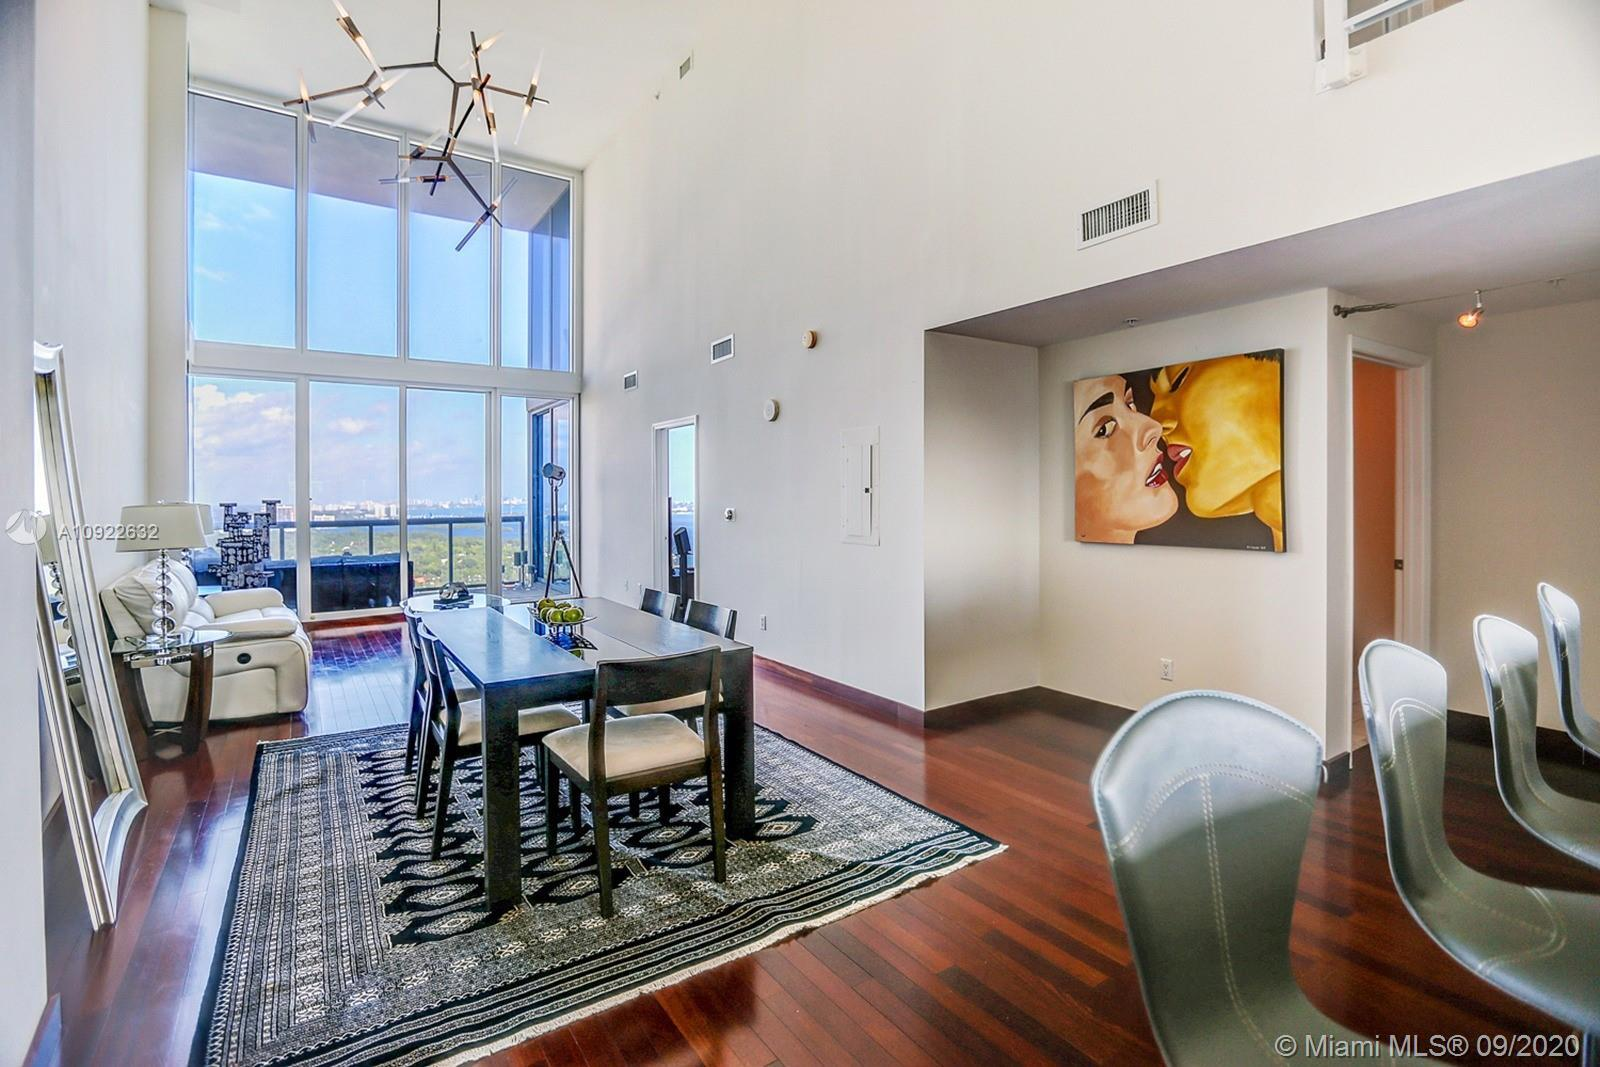 Rare, under $1 million, 1920SF Duplex Penthouse with Incredible Unobstructed Biscayne Bay Views. Dra